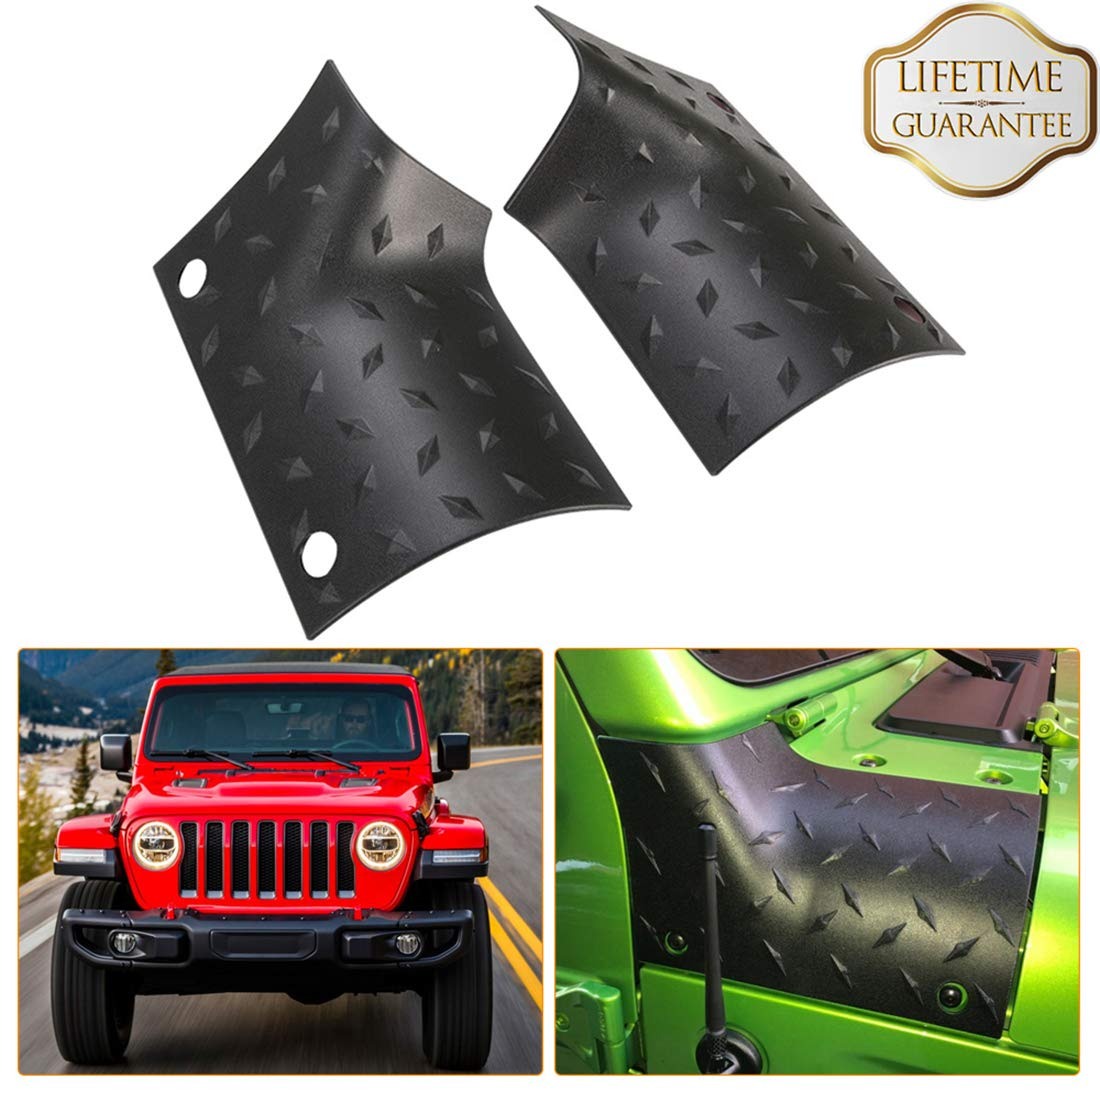 Danti Black Cowl Body Armor Outer Cowling Cover for Jeep Wrangler JK JKU Unlimited Rubicon Sahara X Off Road Sport 2007-2018